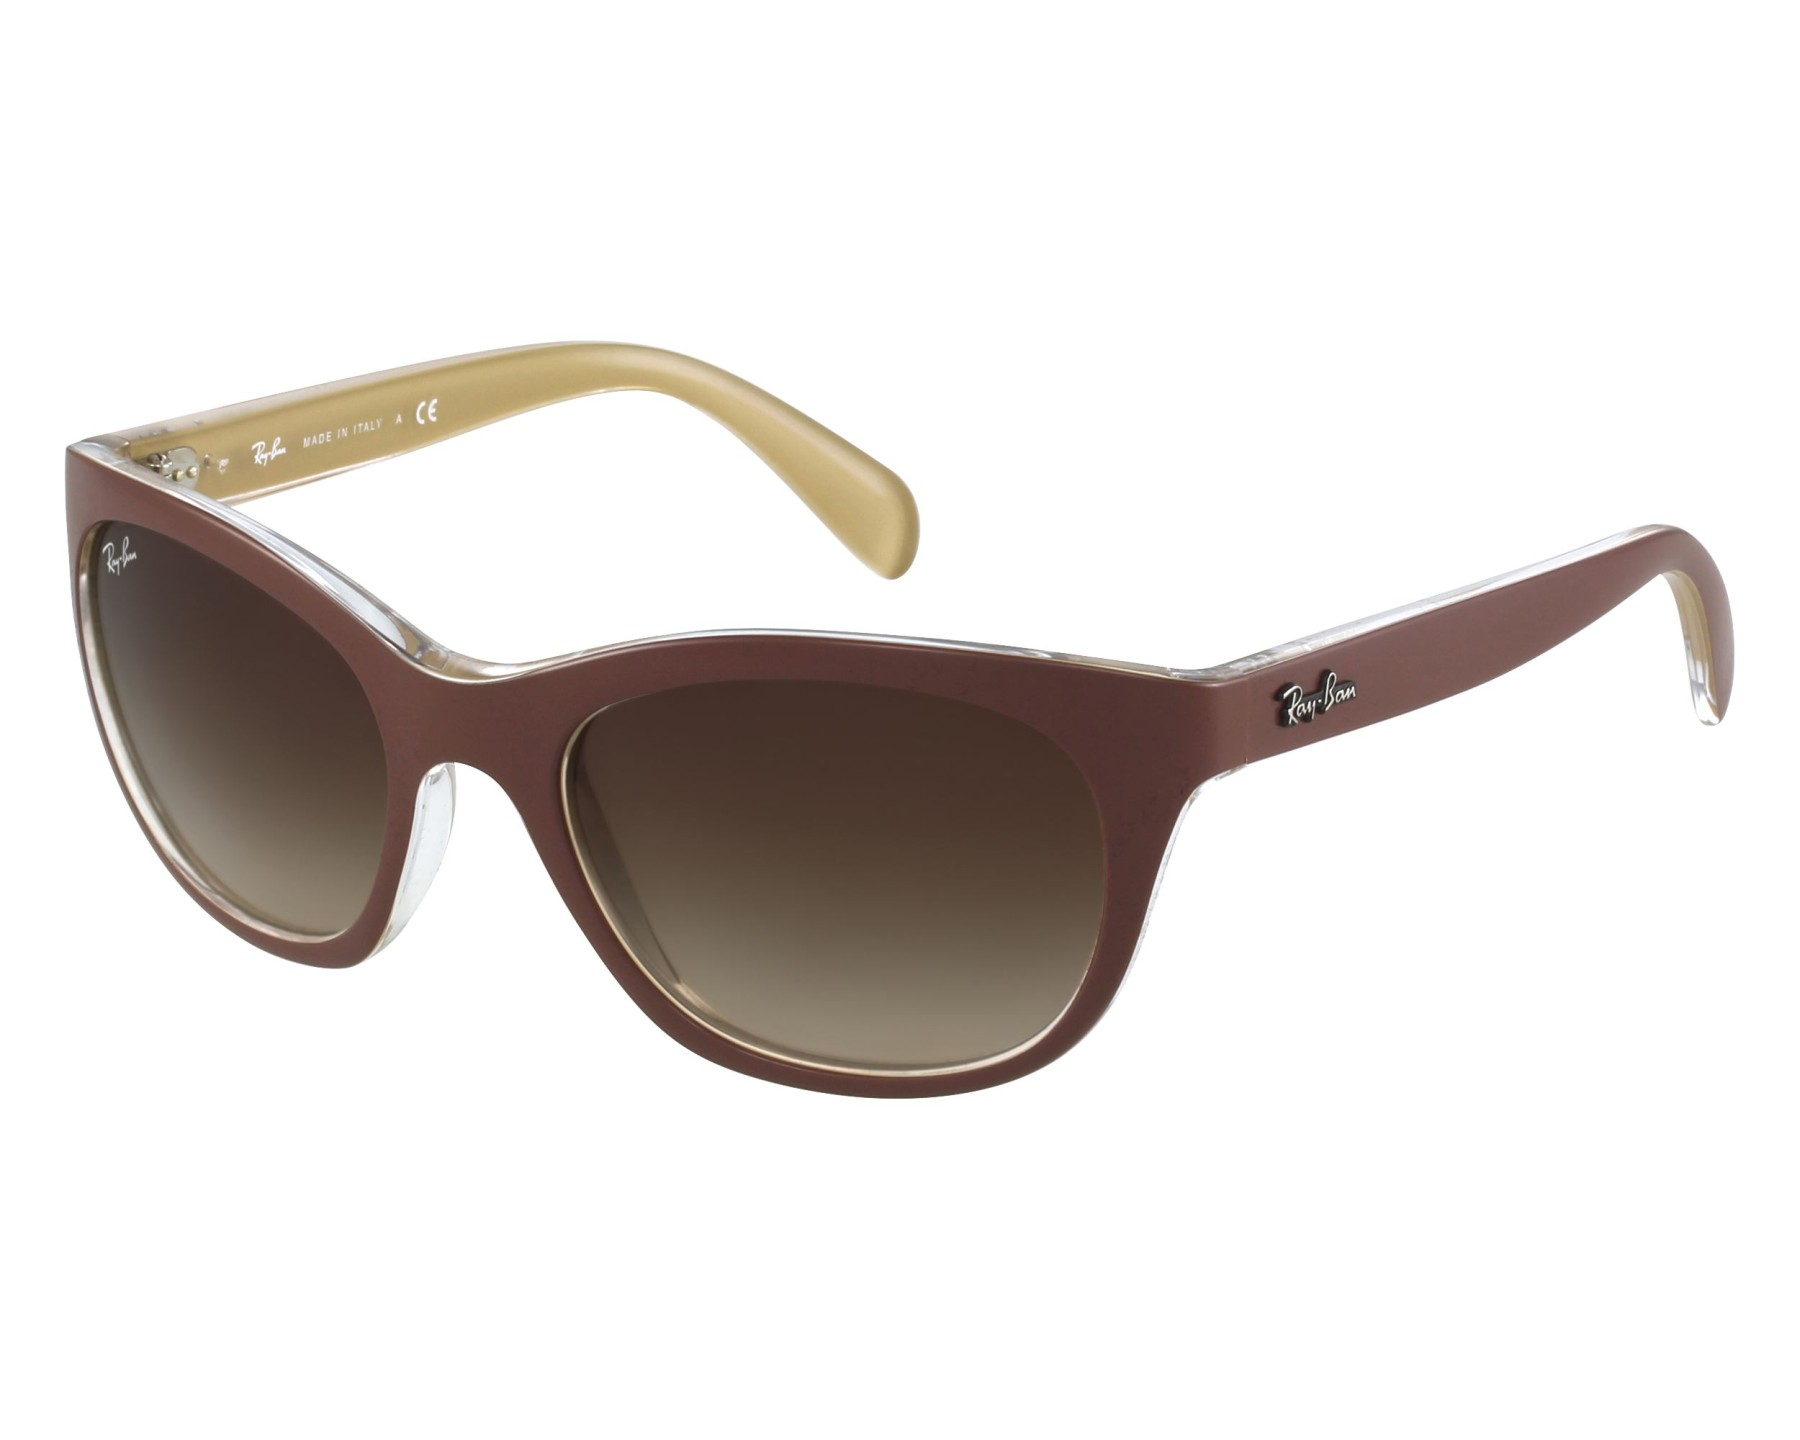 Ray Ban Sunglasses RB 8305 142/T3 Carbon 64MM - Elite